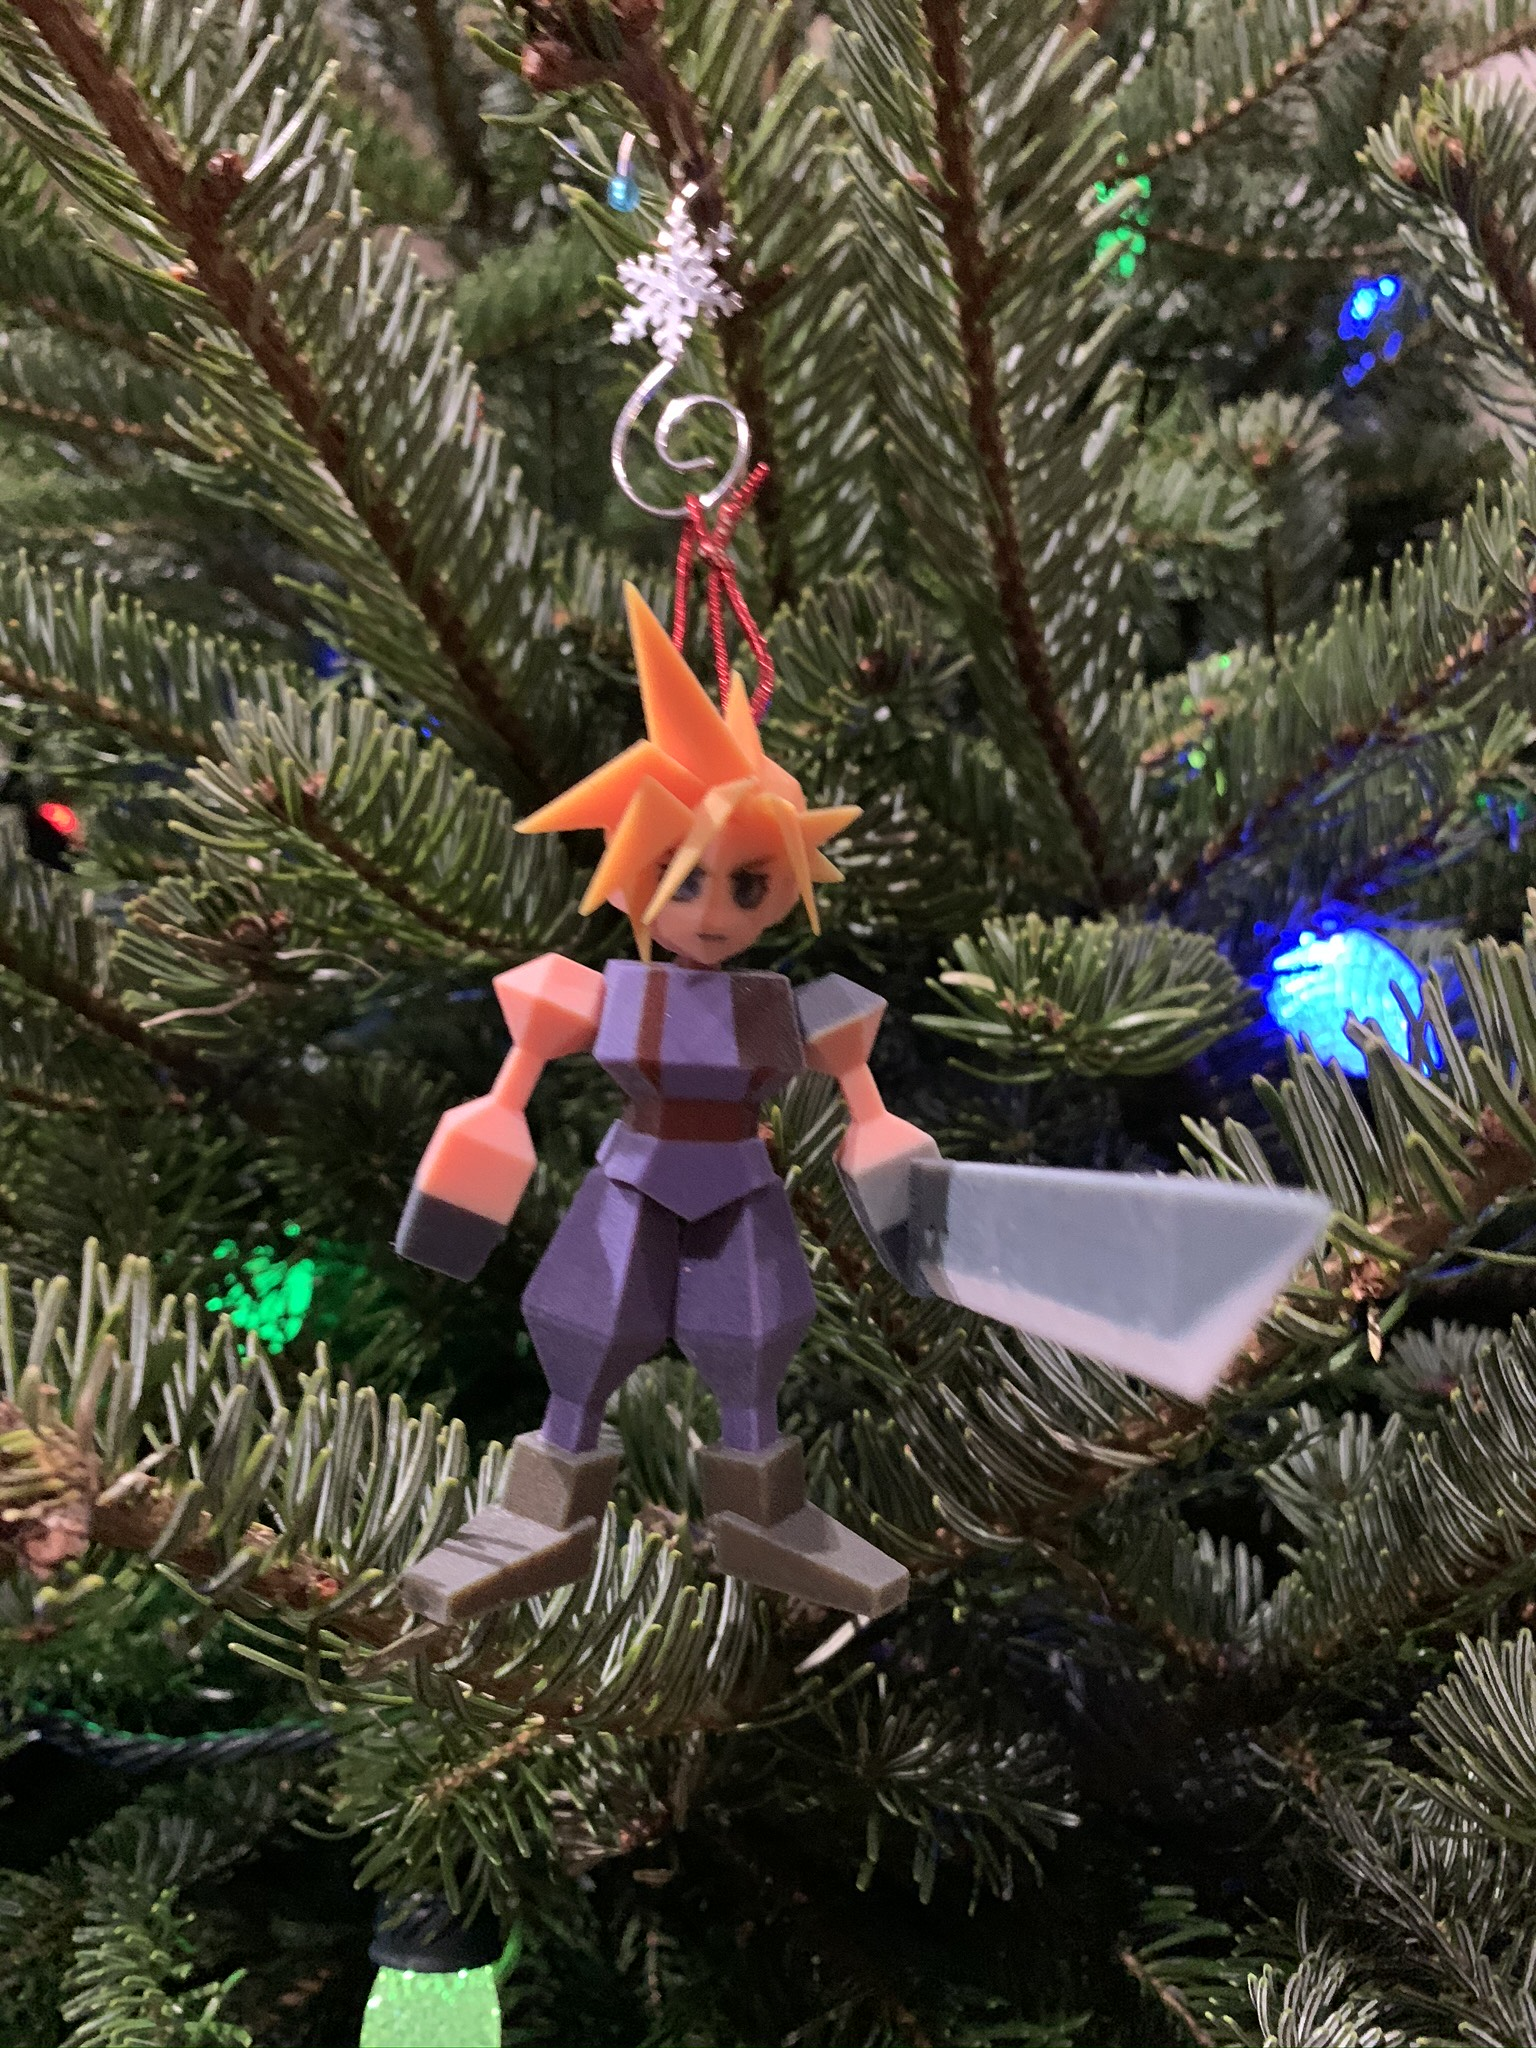 FF VII Ornament (Cloud)